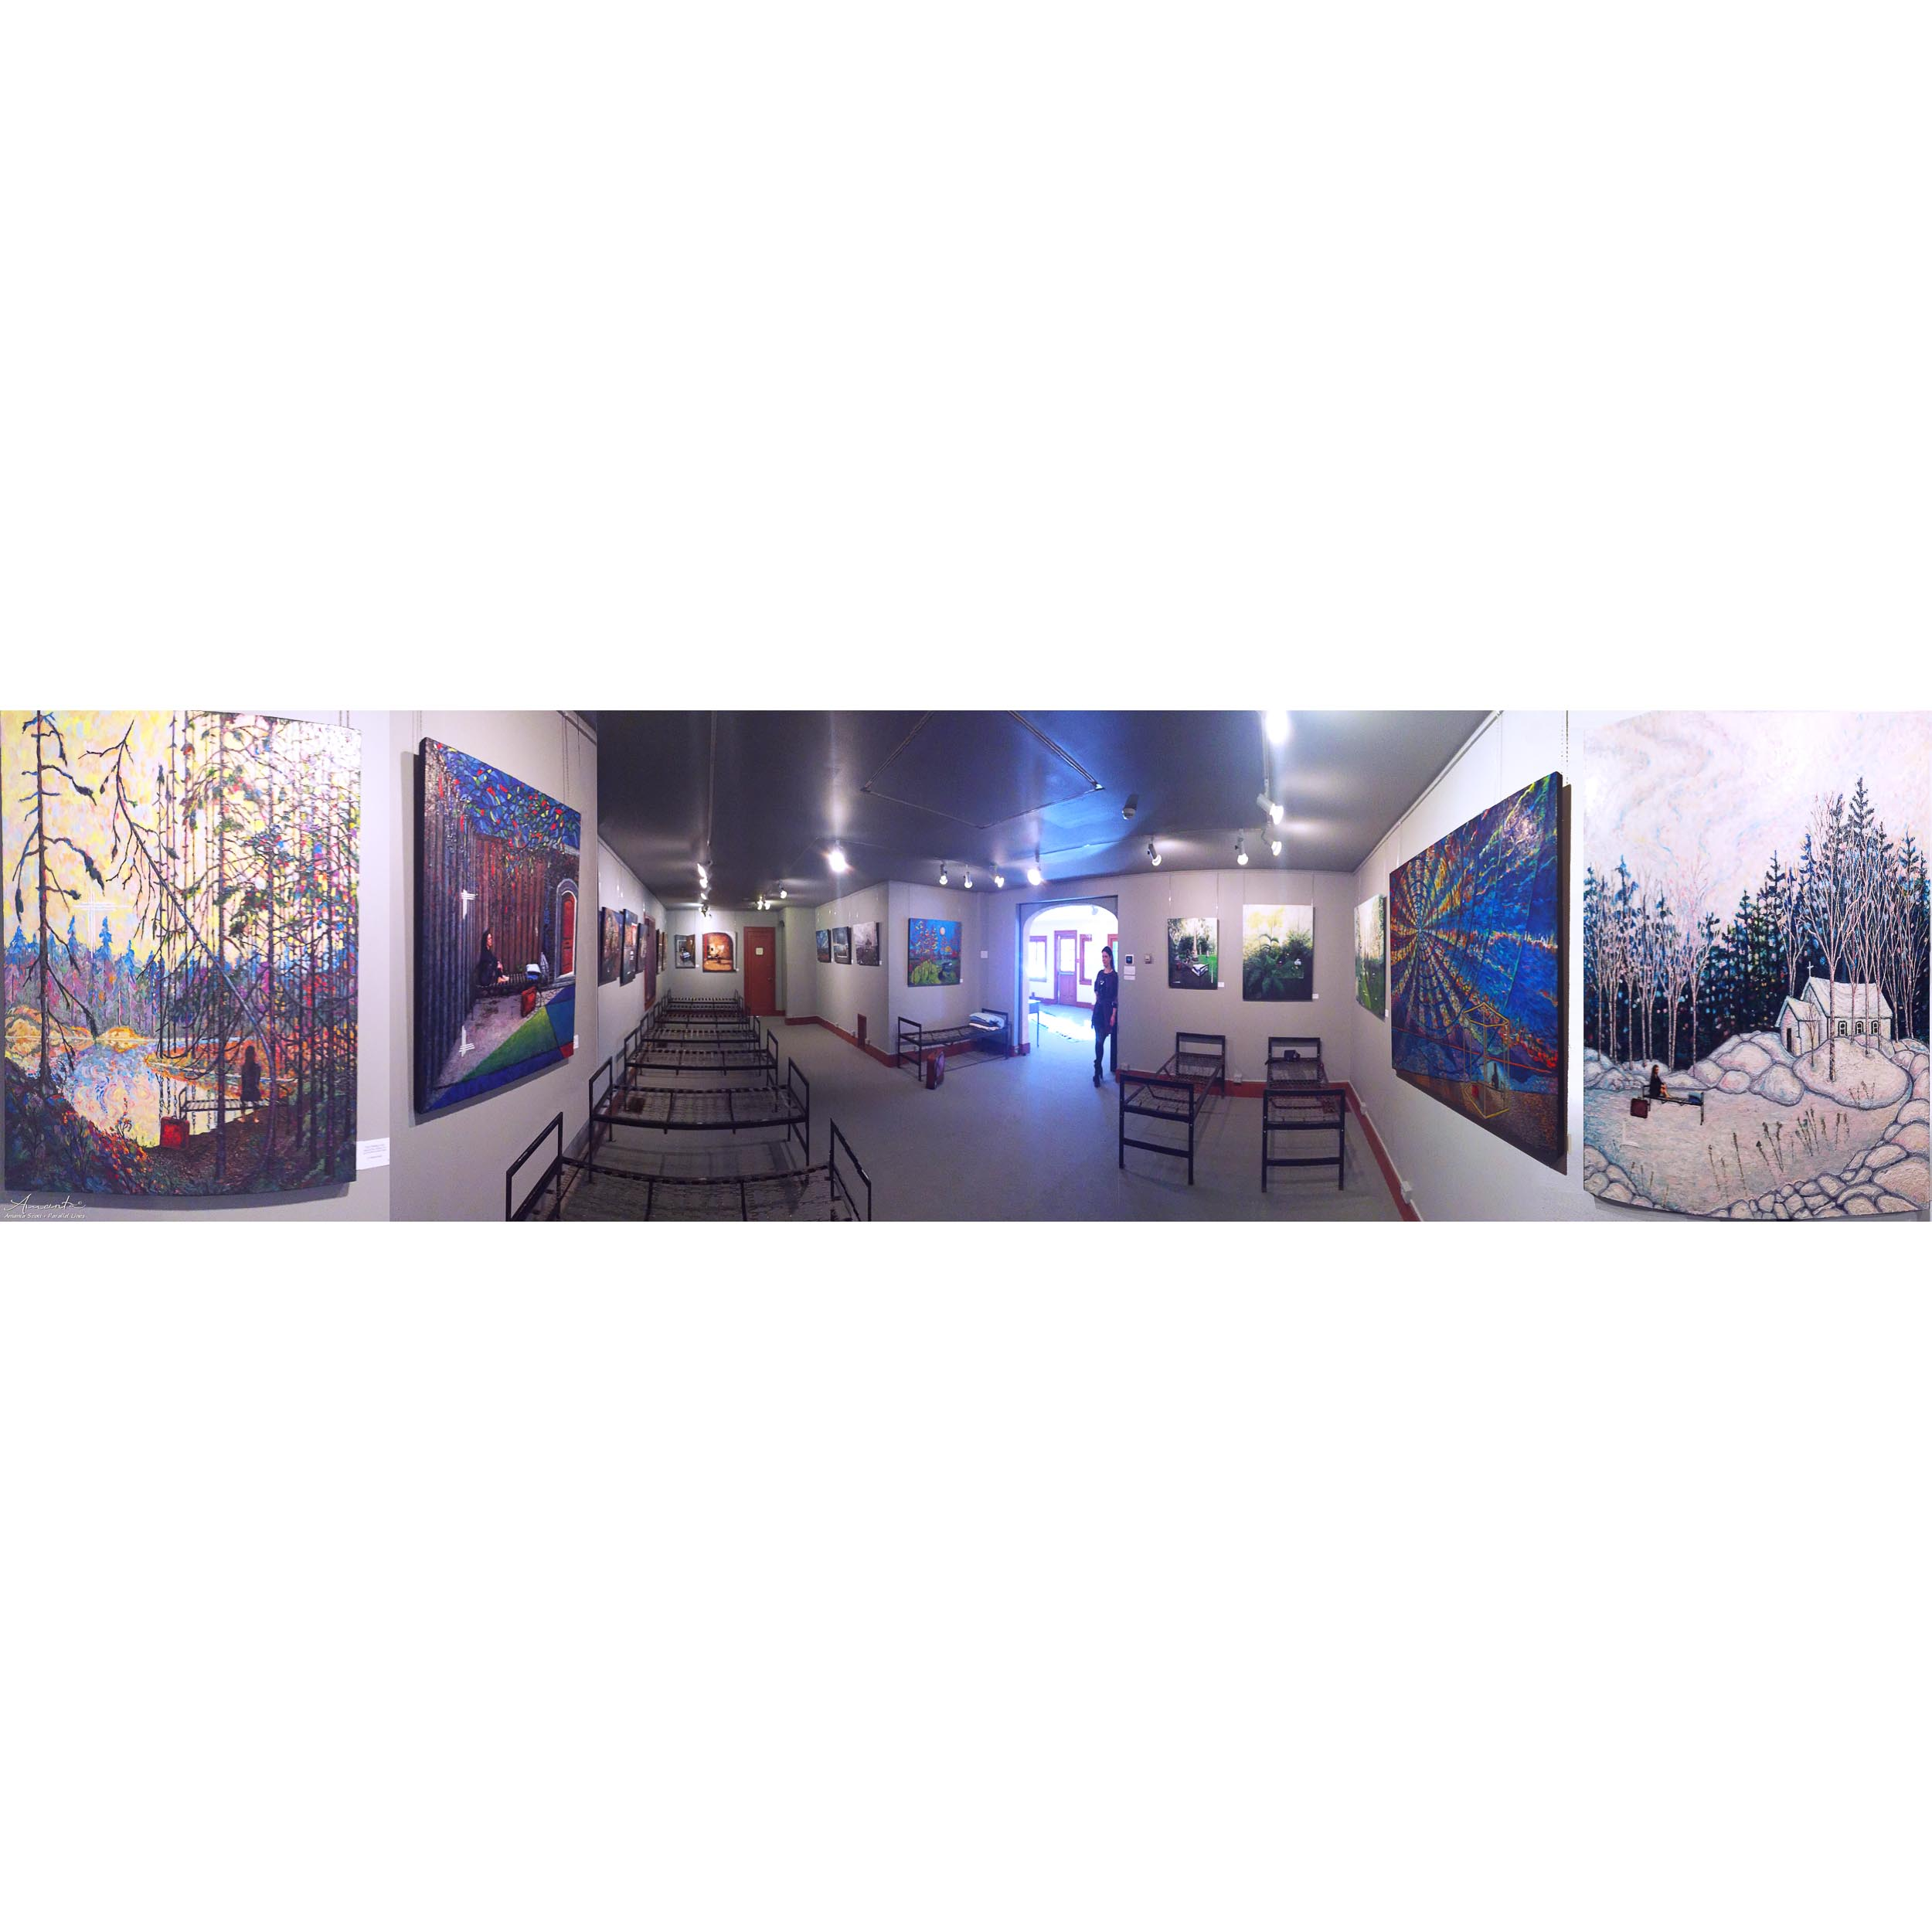 Parallel Lines exhibition panorama